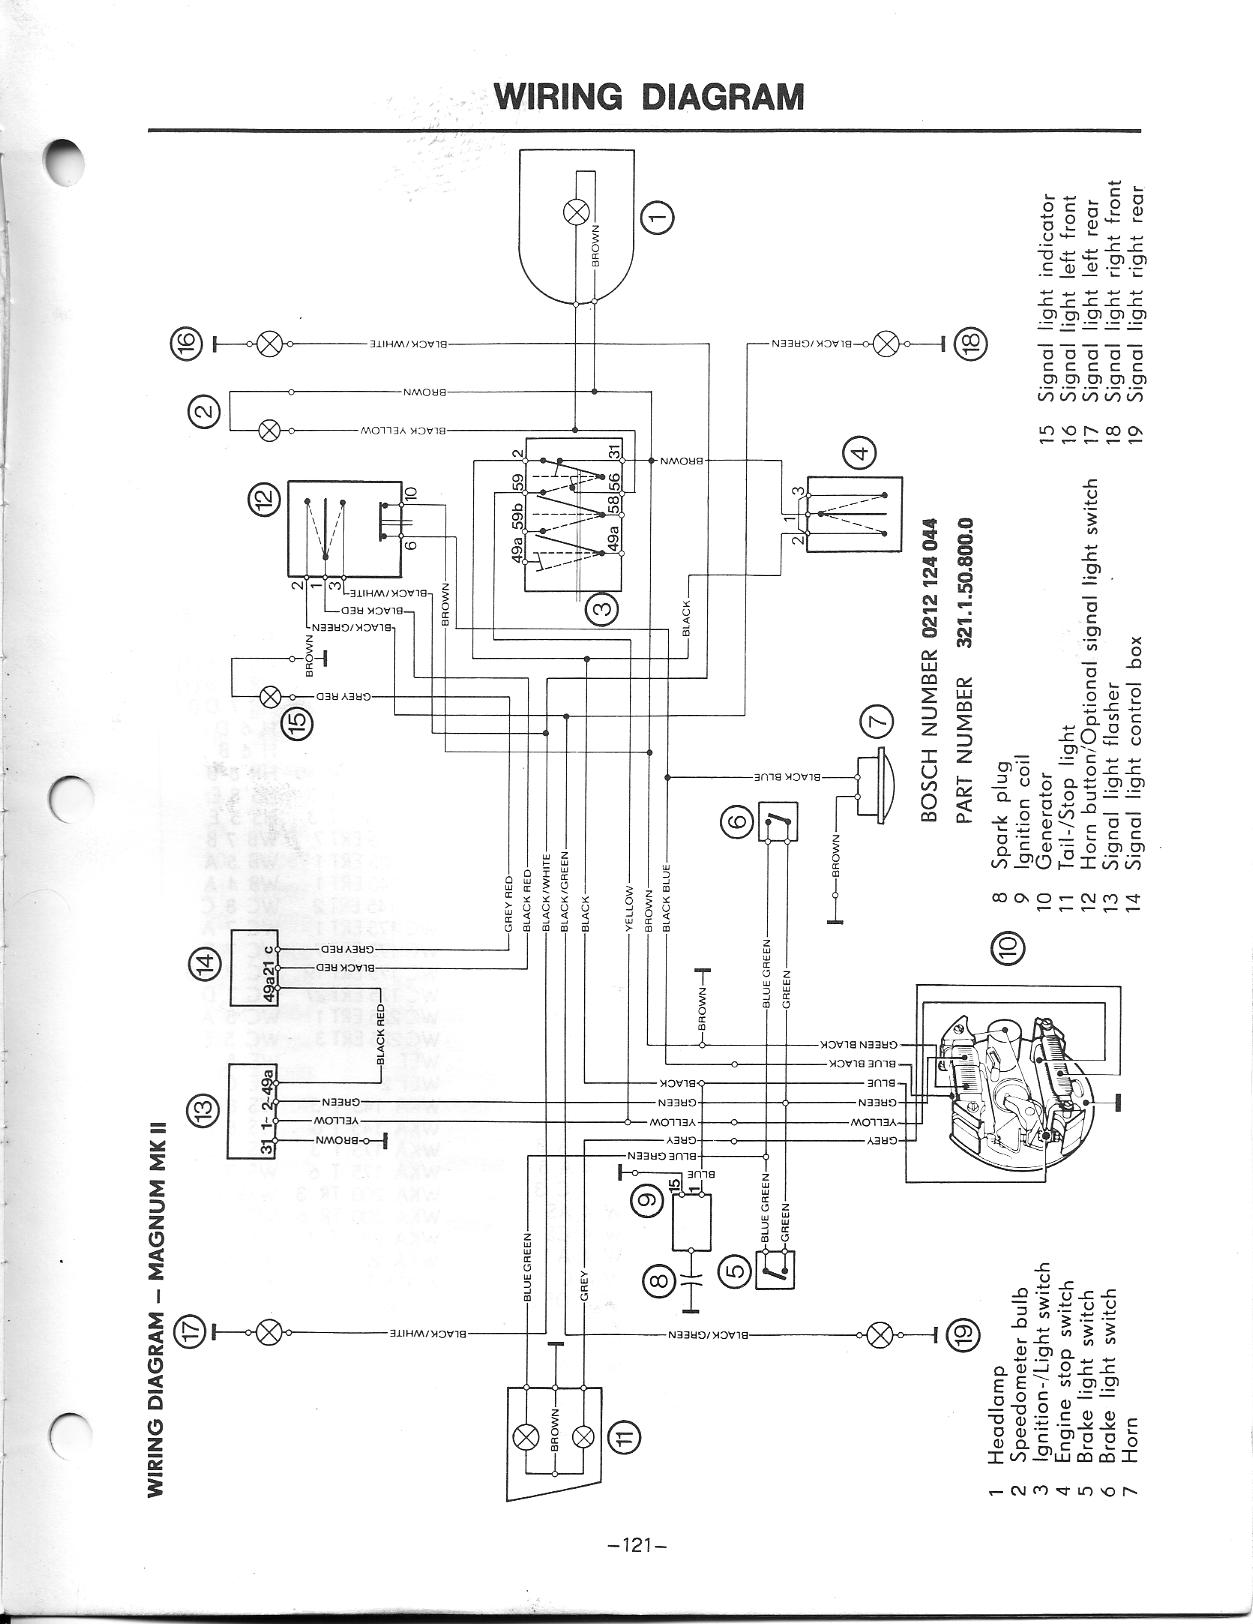 puch magnum wiring question 1978 puch maxi wiring diagram wiring diagram puch newport